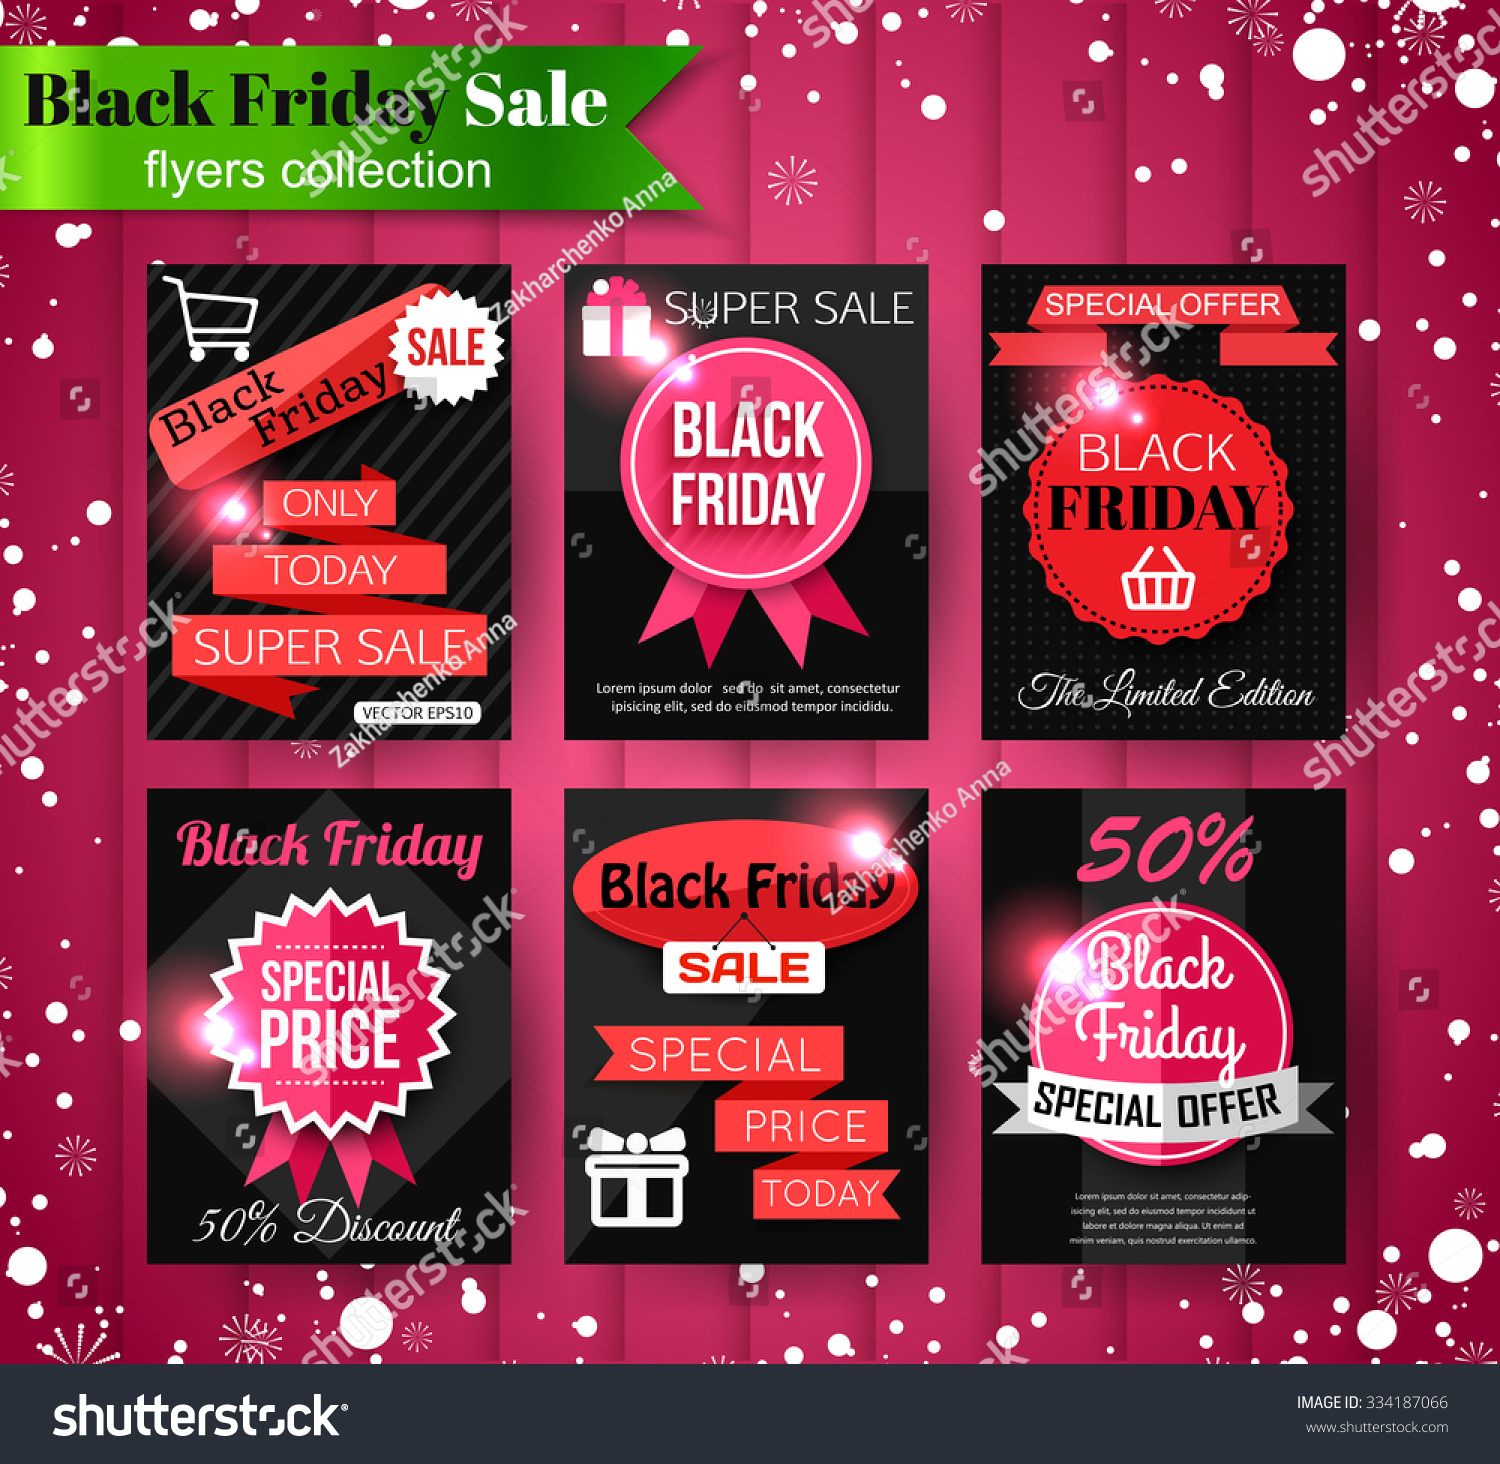 black friday banners flyers collection christmas black friday banners flyers collection christmas vector illustration